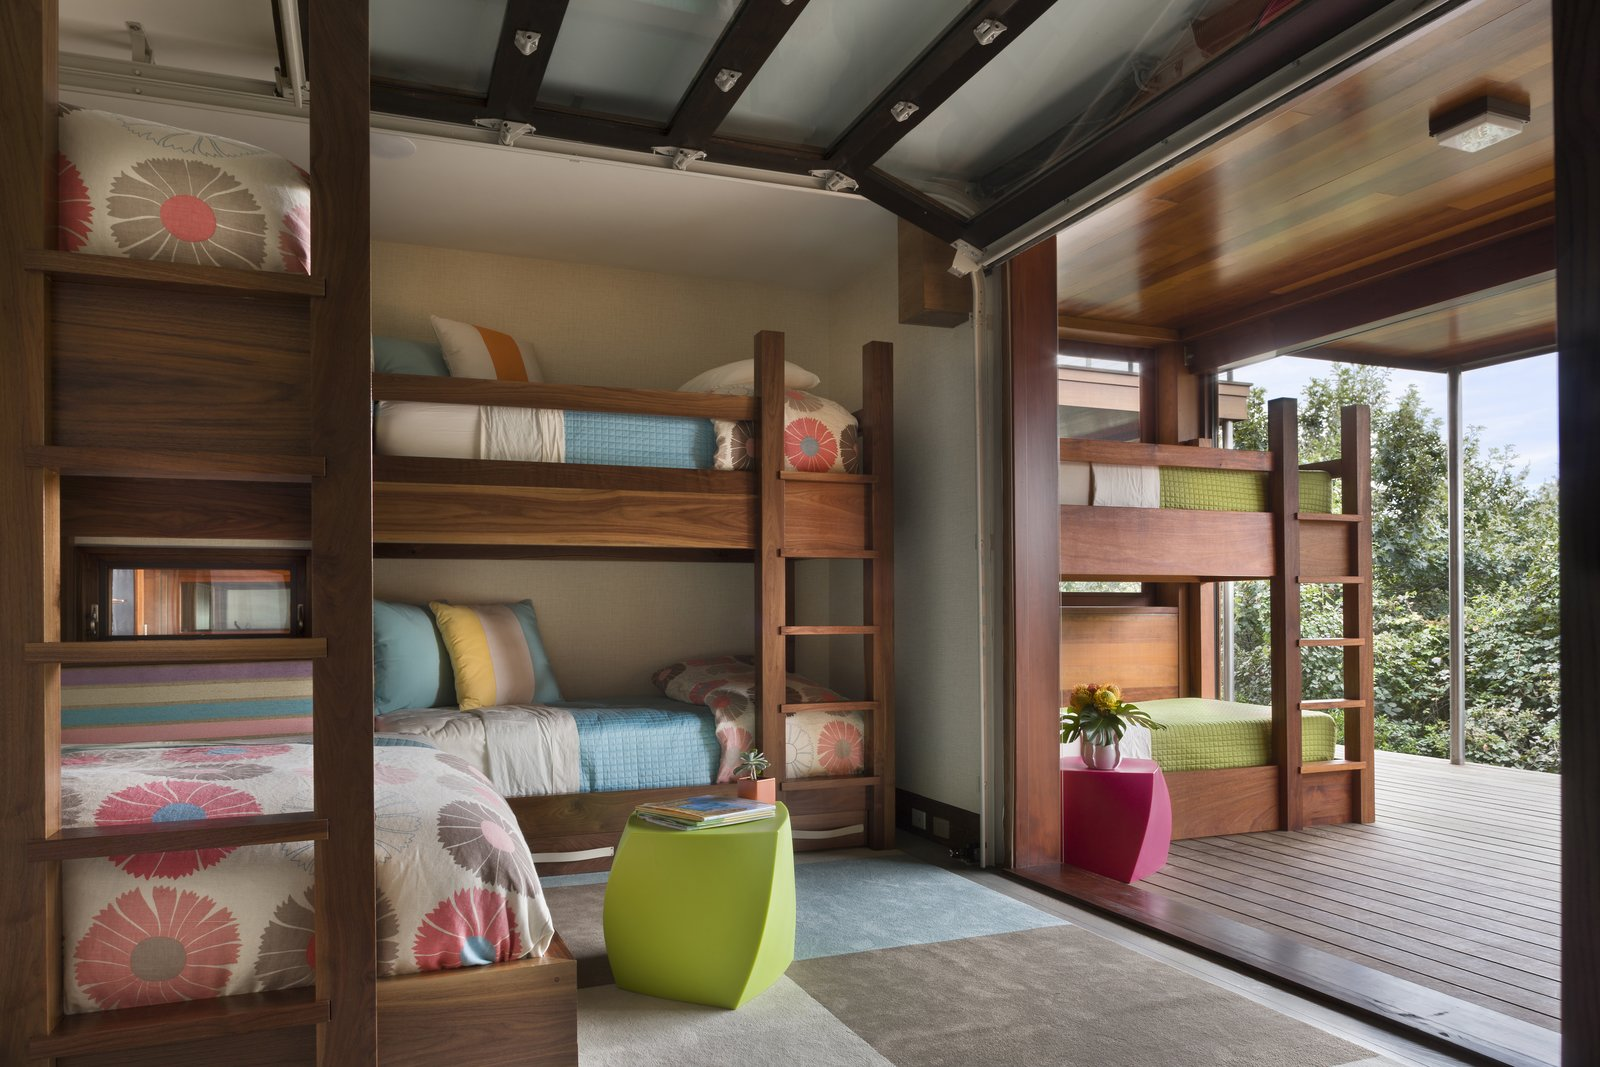 Garage-style doors open and connect the children's rooms to the outdoors.